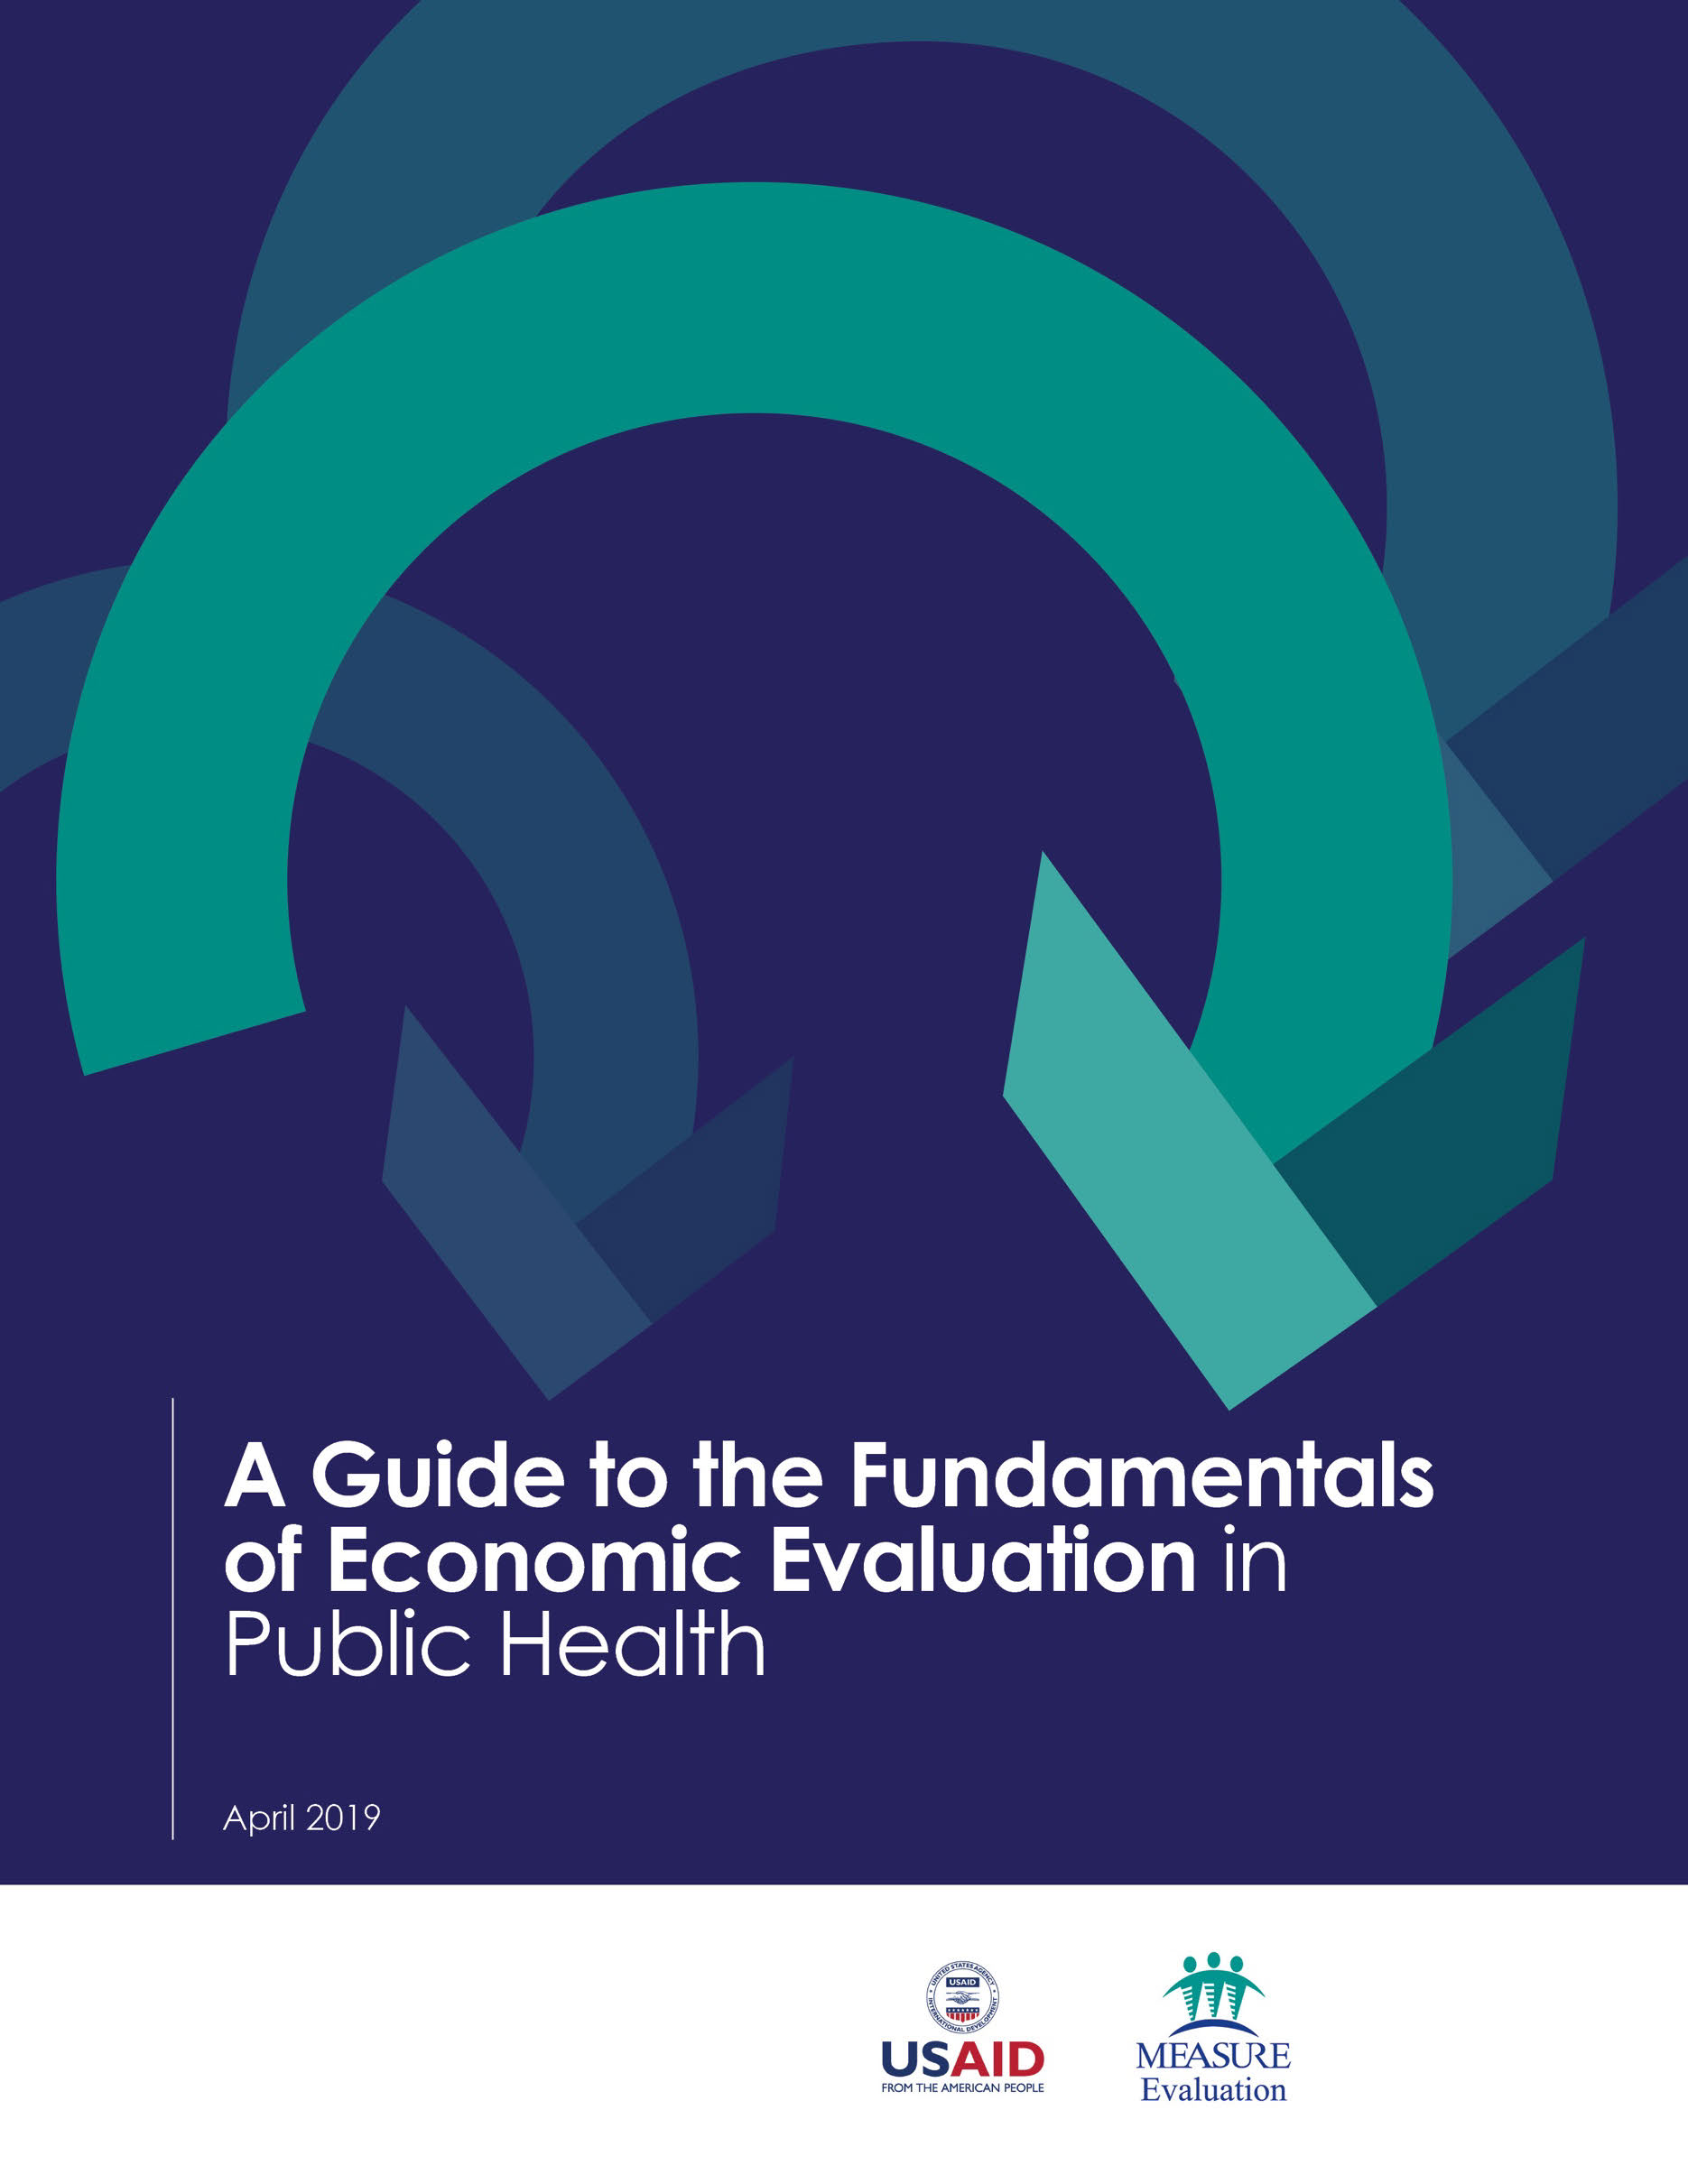 A Guide to the Fundamentals of Economic Evaluation in Public Health